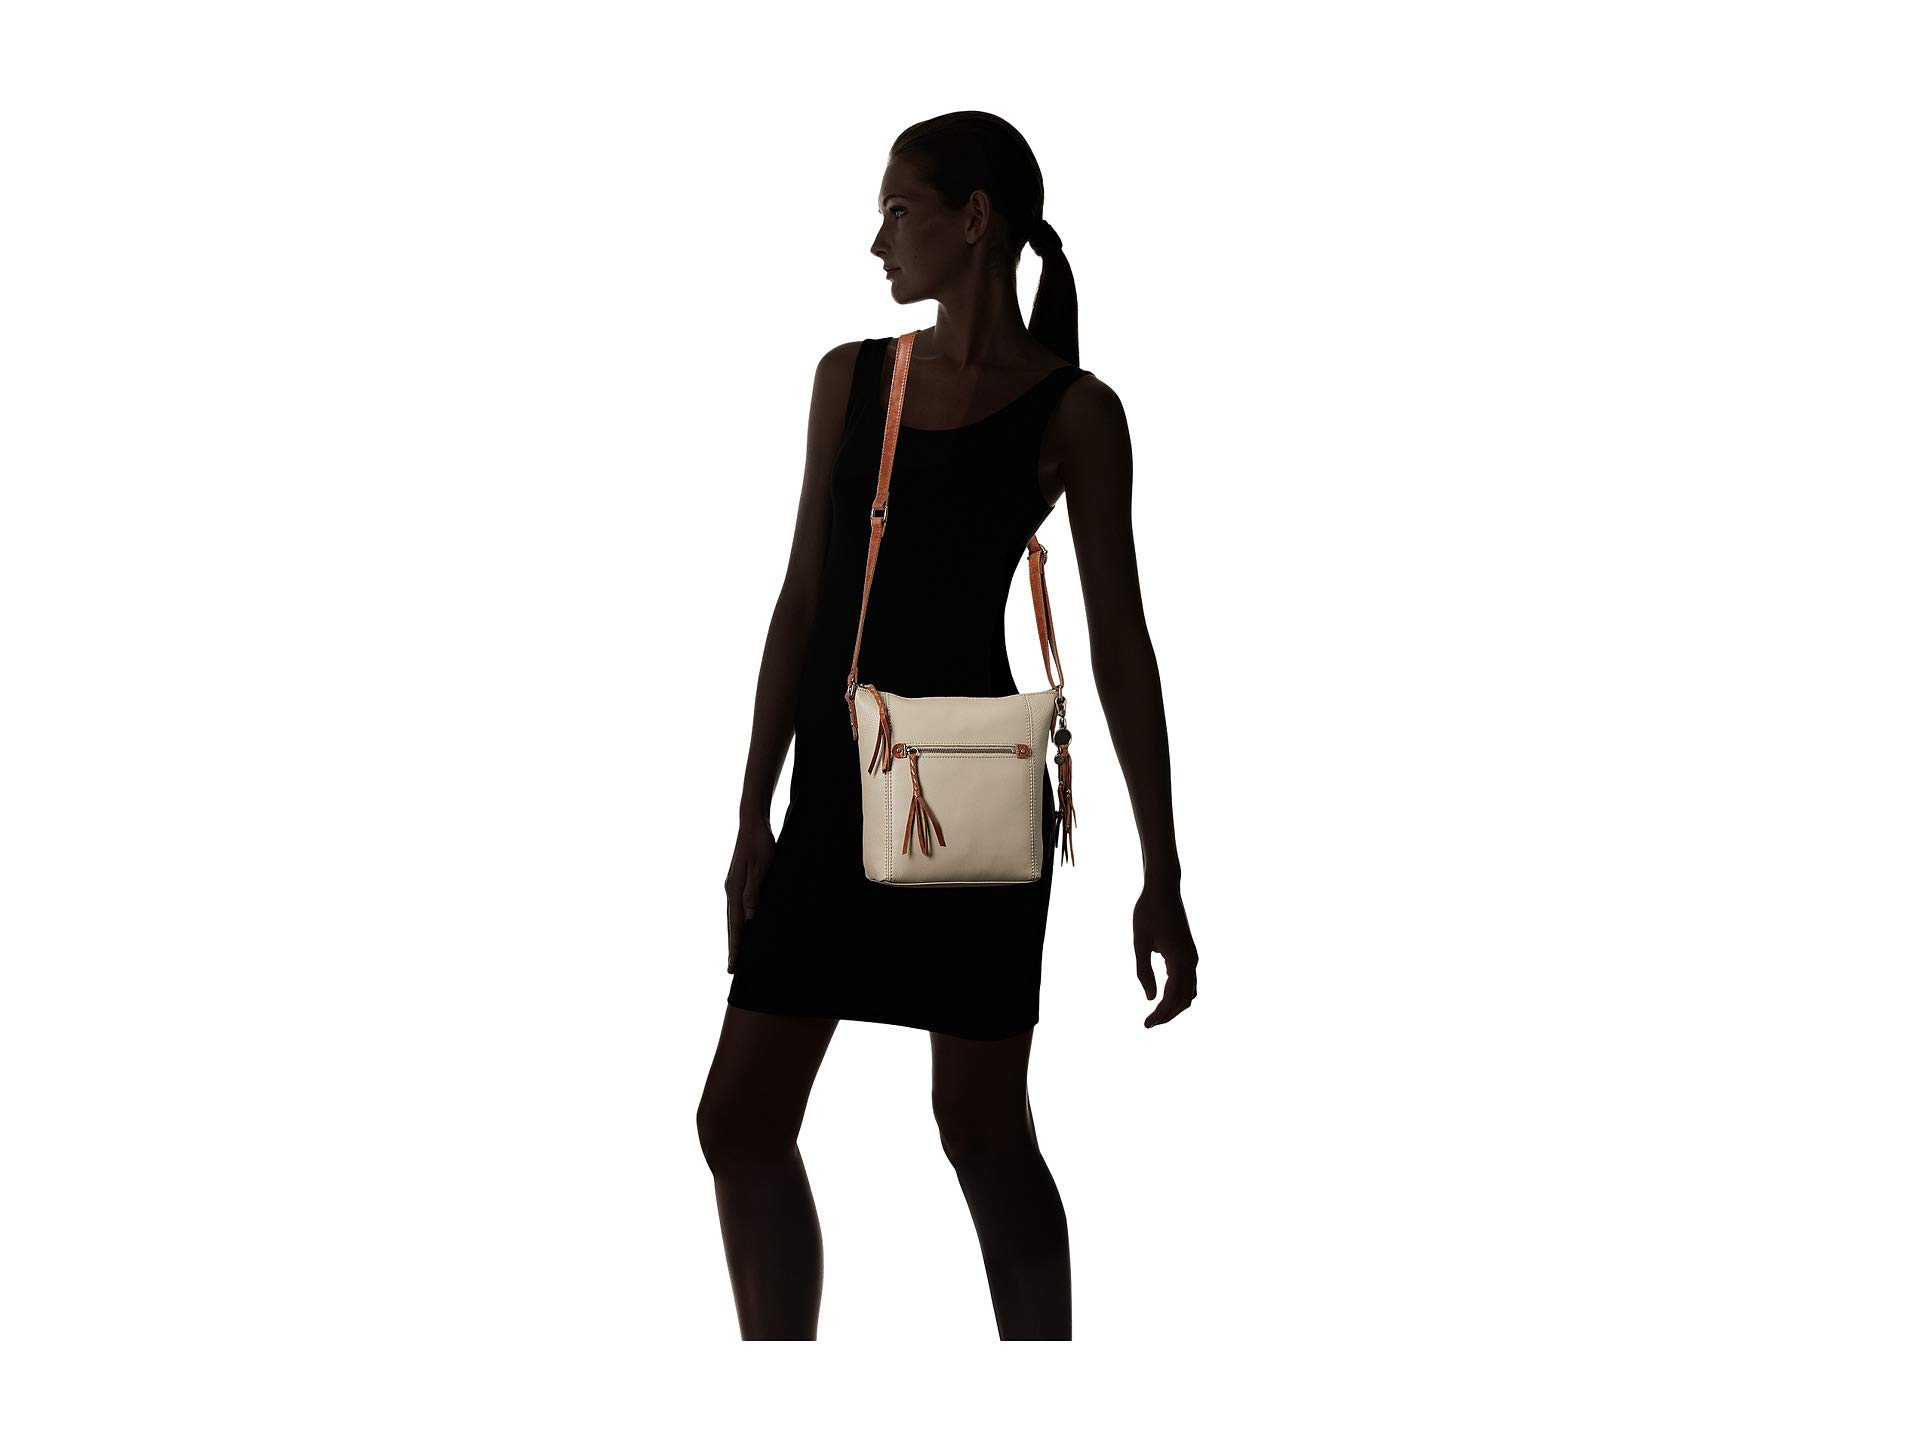 Sak Dove Ashland Sak Crossbody The Ashland The Crossbody Dove Rxzw6Tz45q